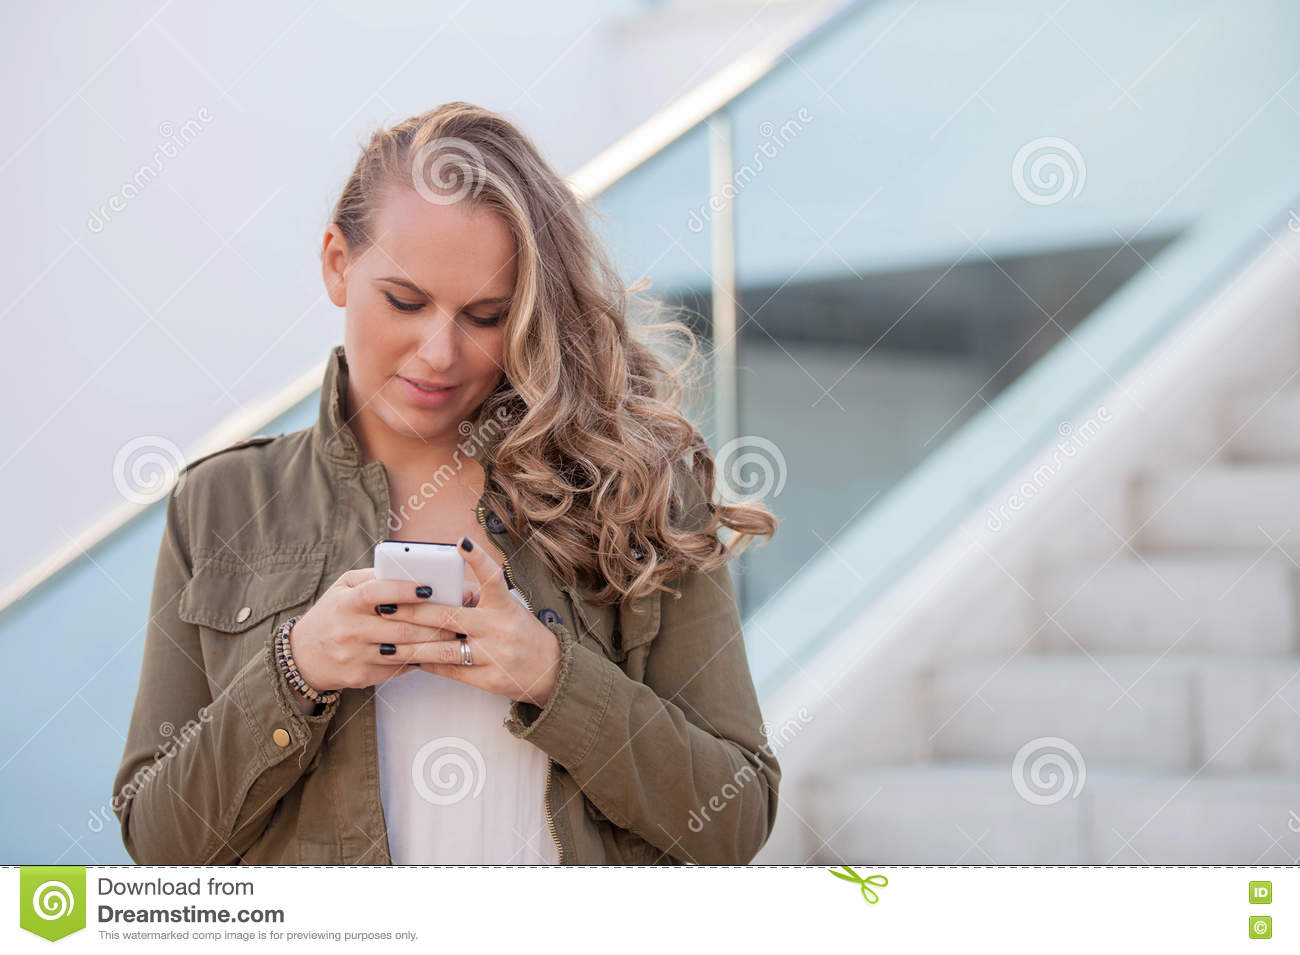 Woman texting on cell or mobile phone